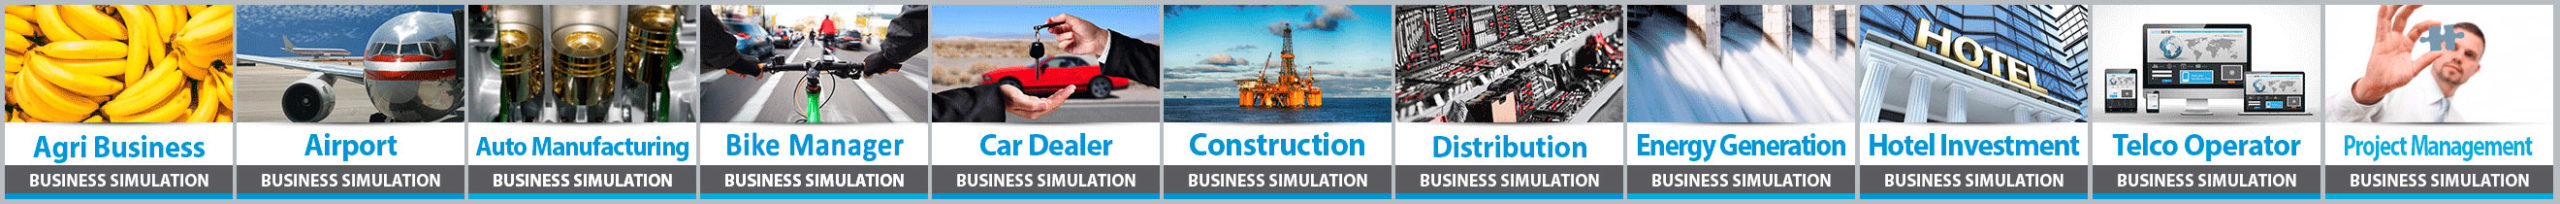 Industry Specific Business Simulations from IndustryMasters